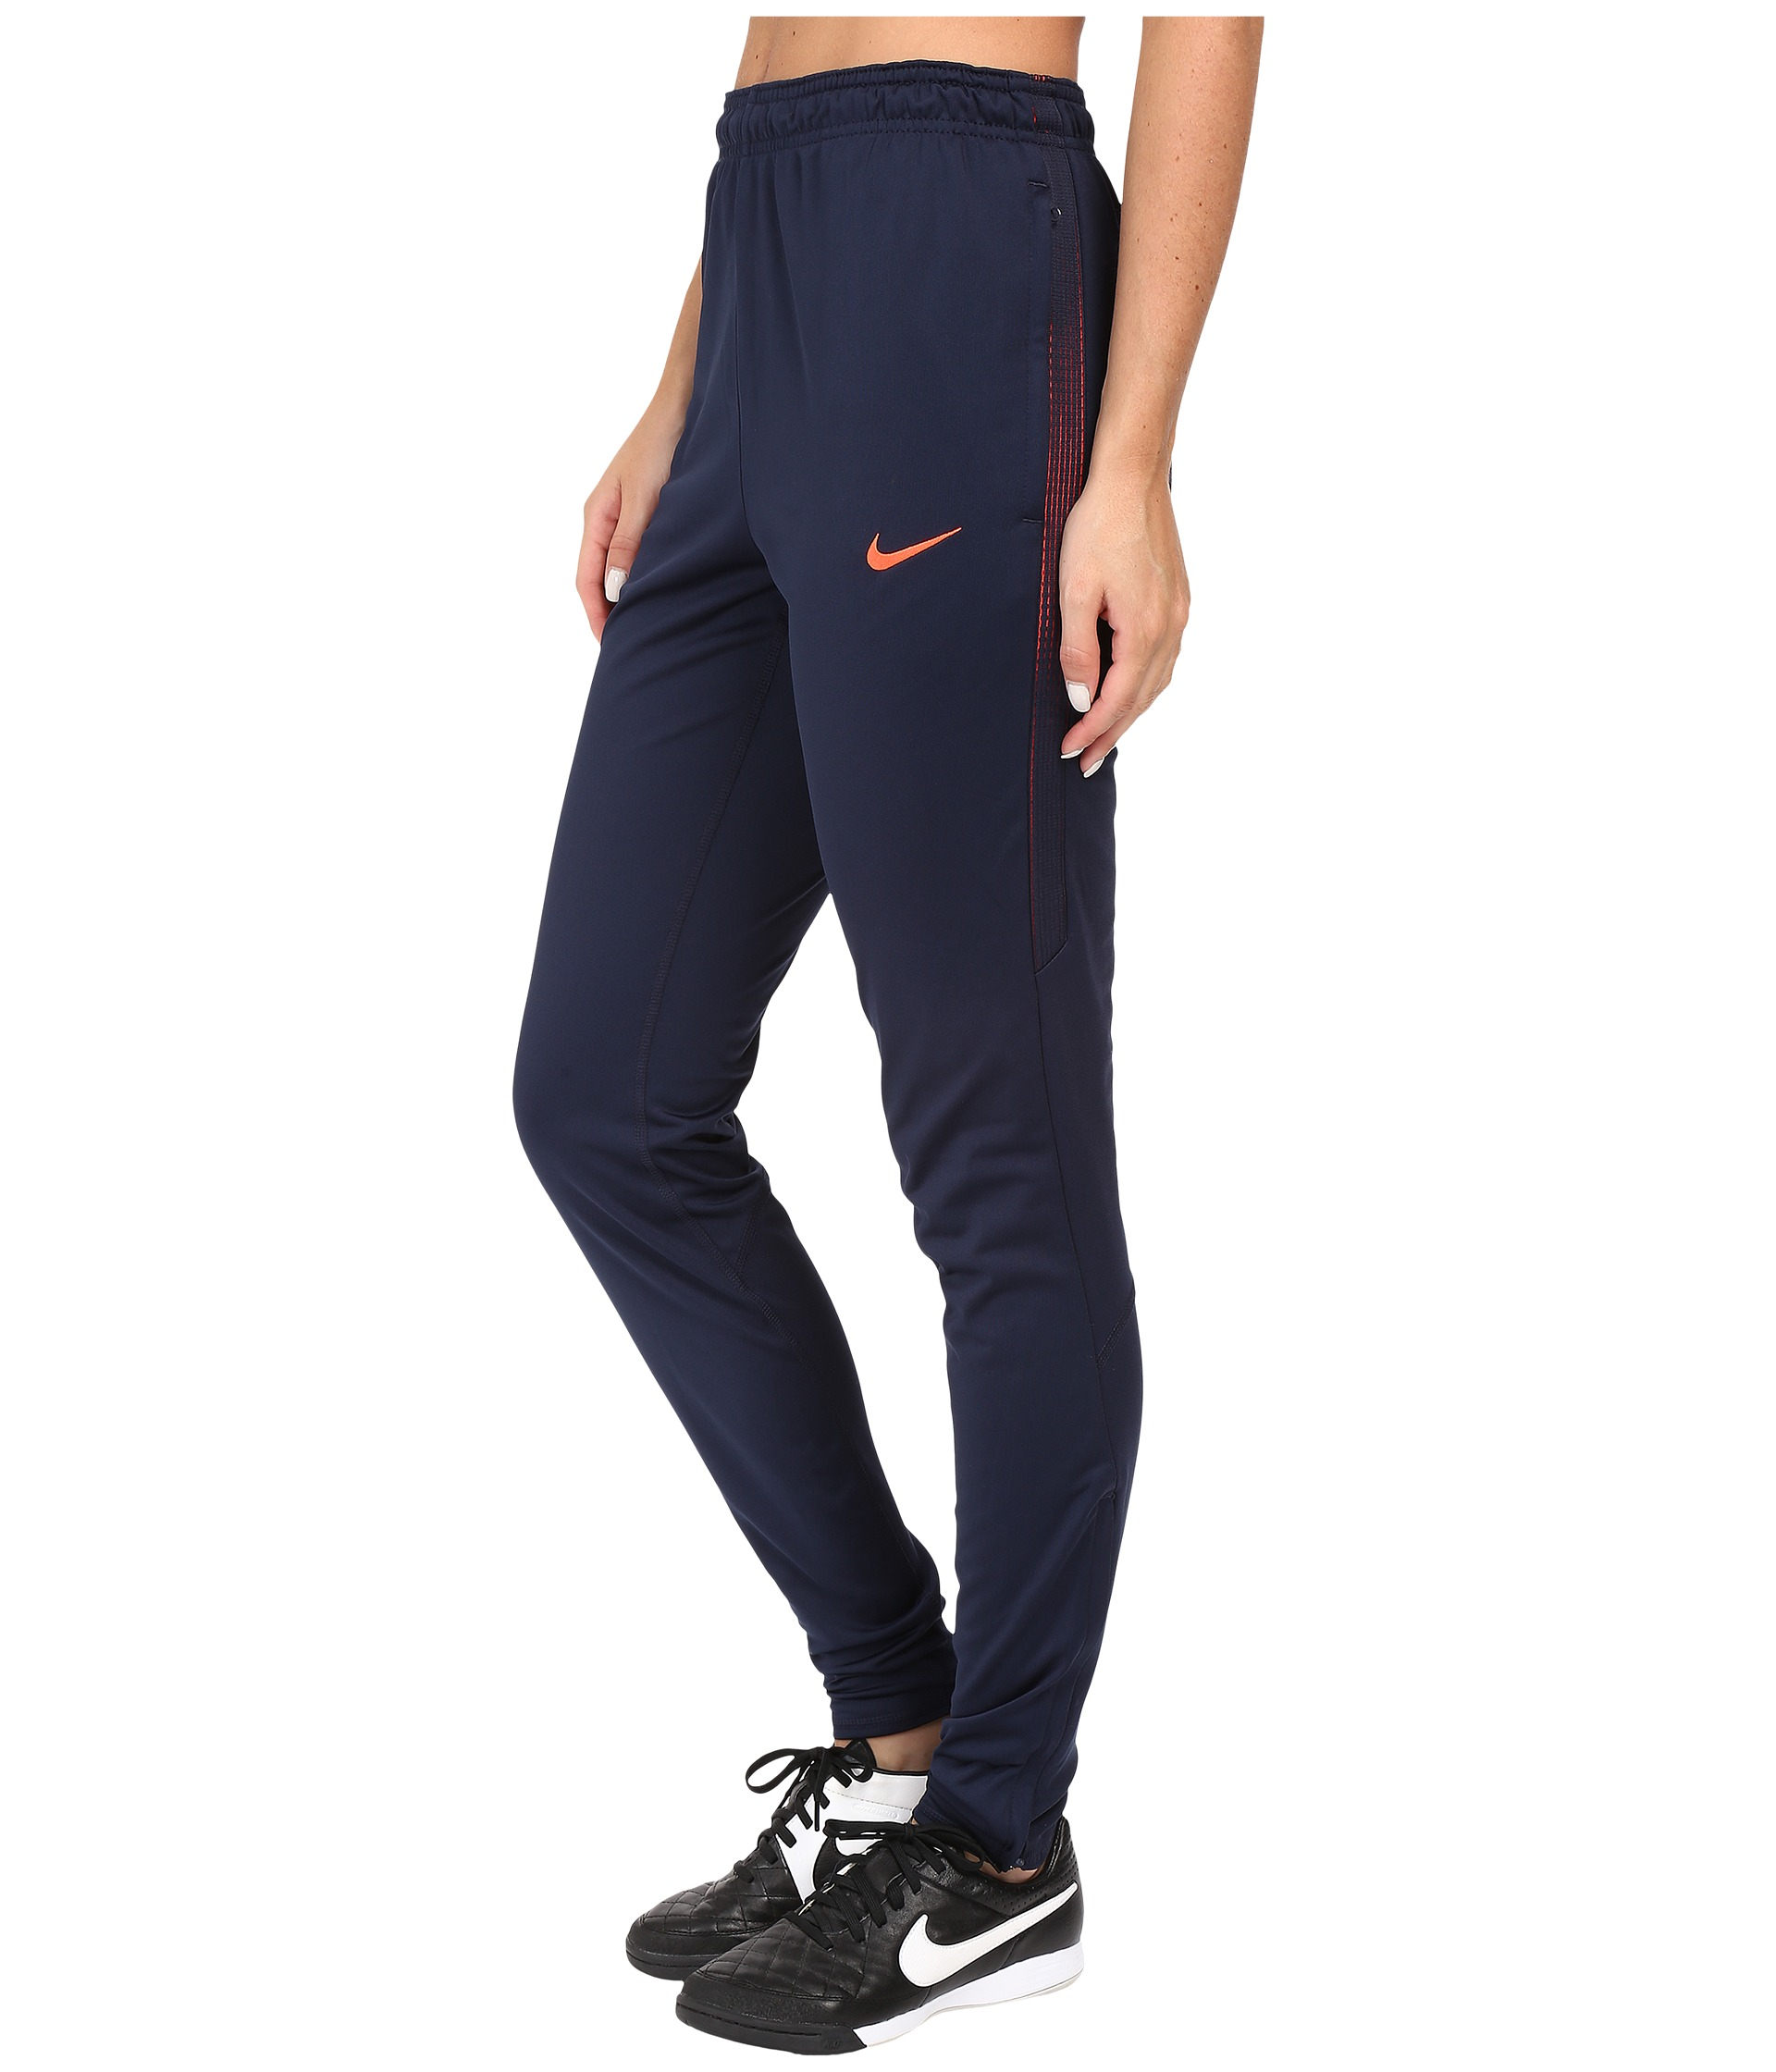 Nike Dry Soccer Pant - Zappos.com Free Shipping BOTH Ways